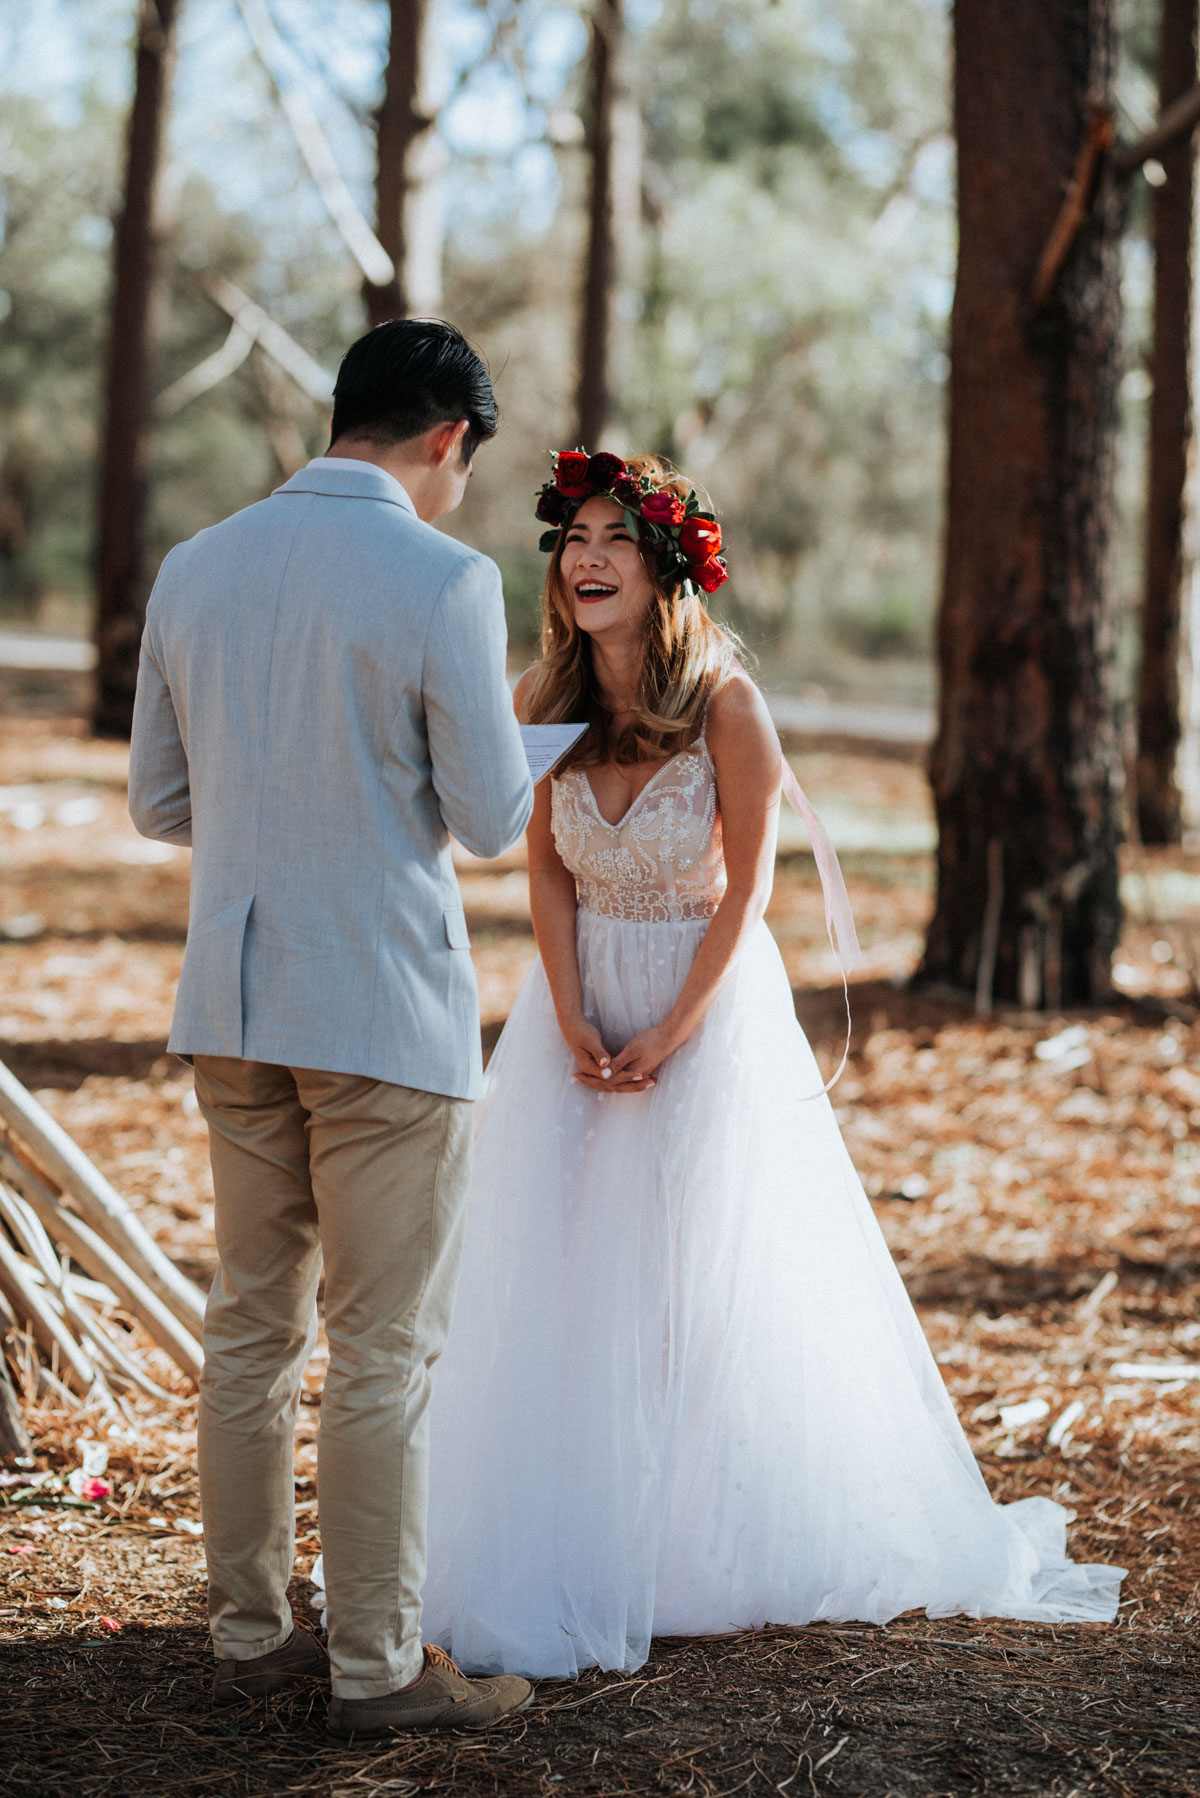 james-julene-forest-elopement-perth-12.JPG